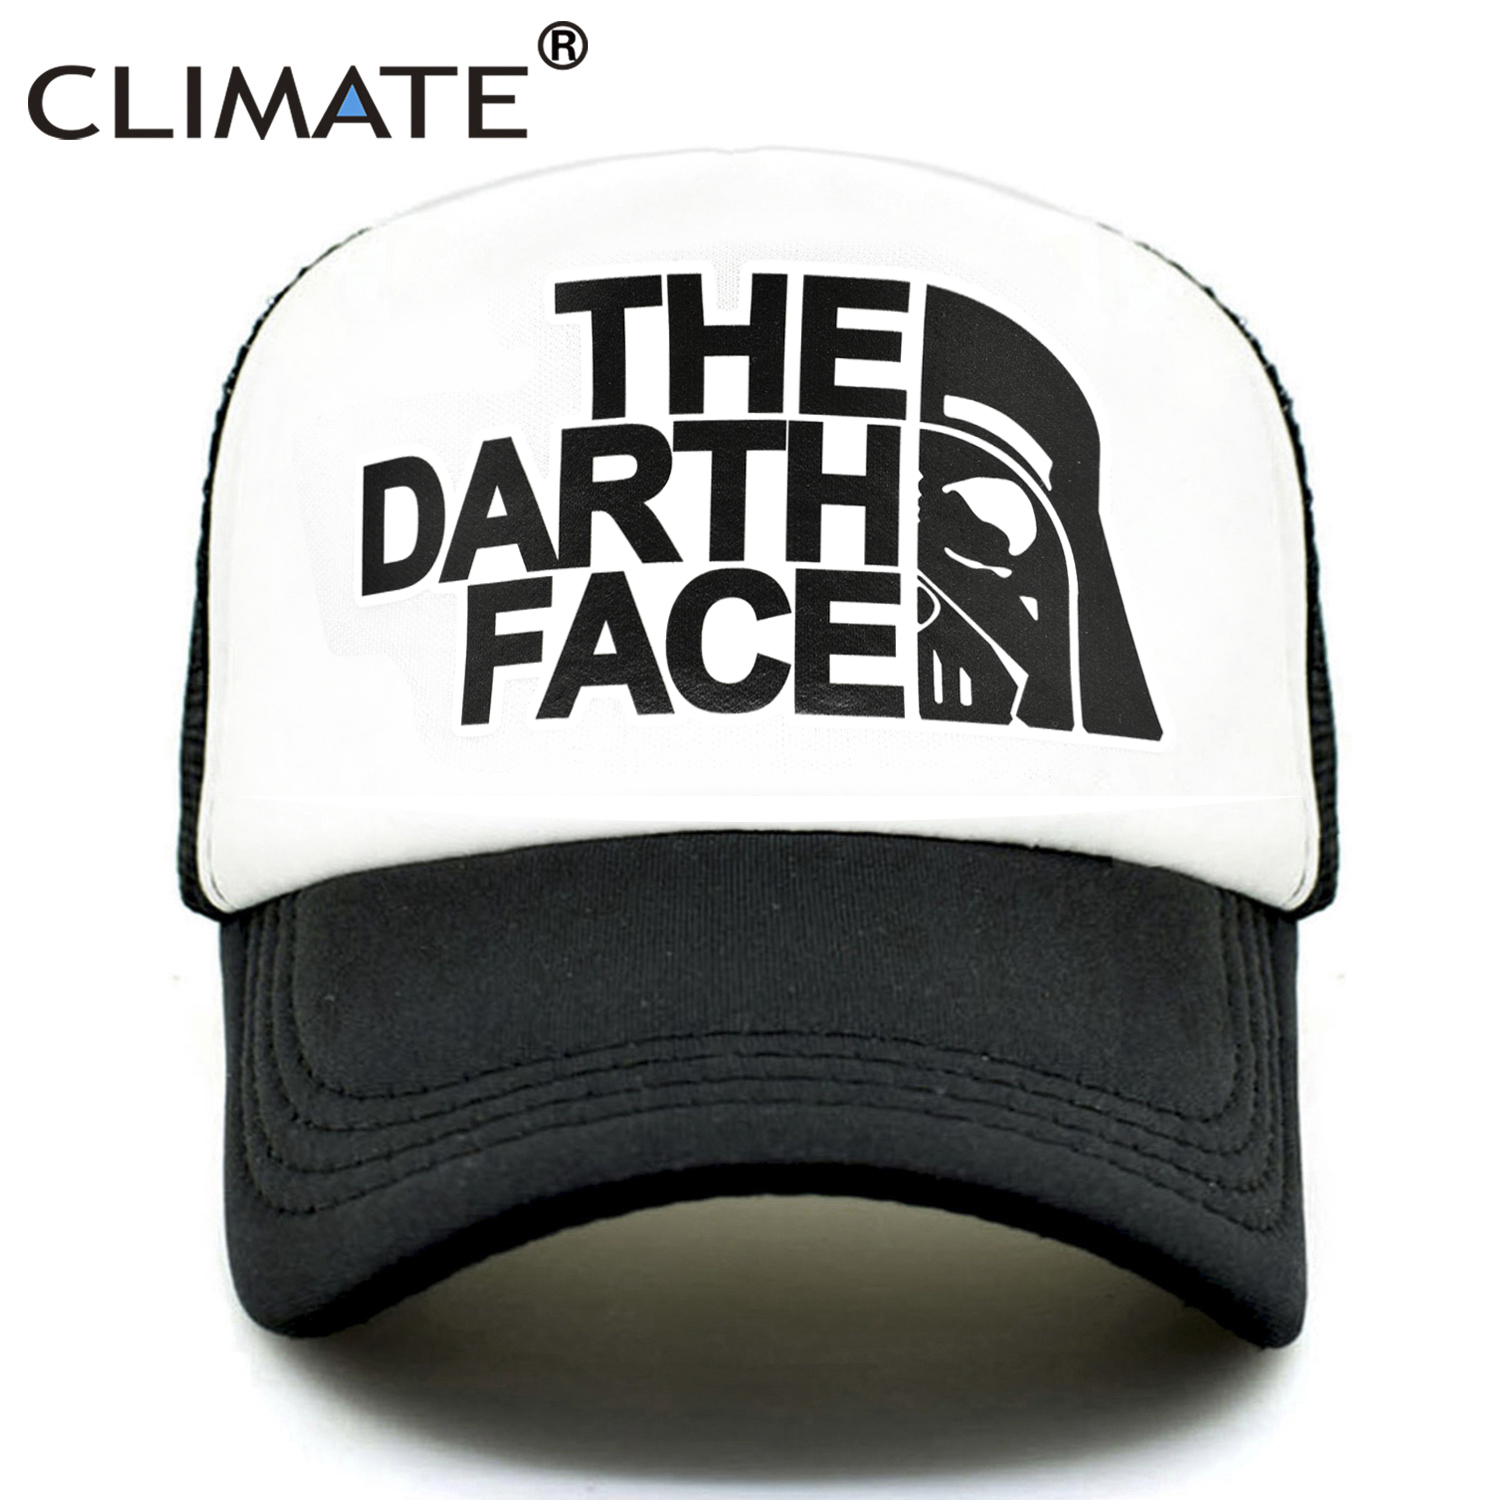 CLIMATE Darth Trucker   Cap   Star Darth Wars Funny   Caps   Men The Darth Face Hat   Baseball     Cap   Cool Summer Mesh Net   Cap   Hat for Men